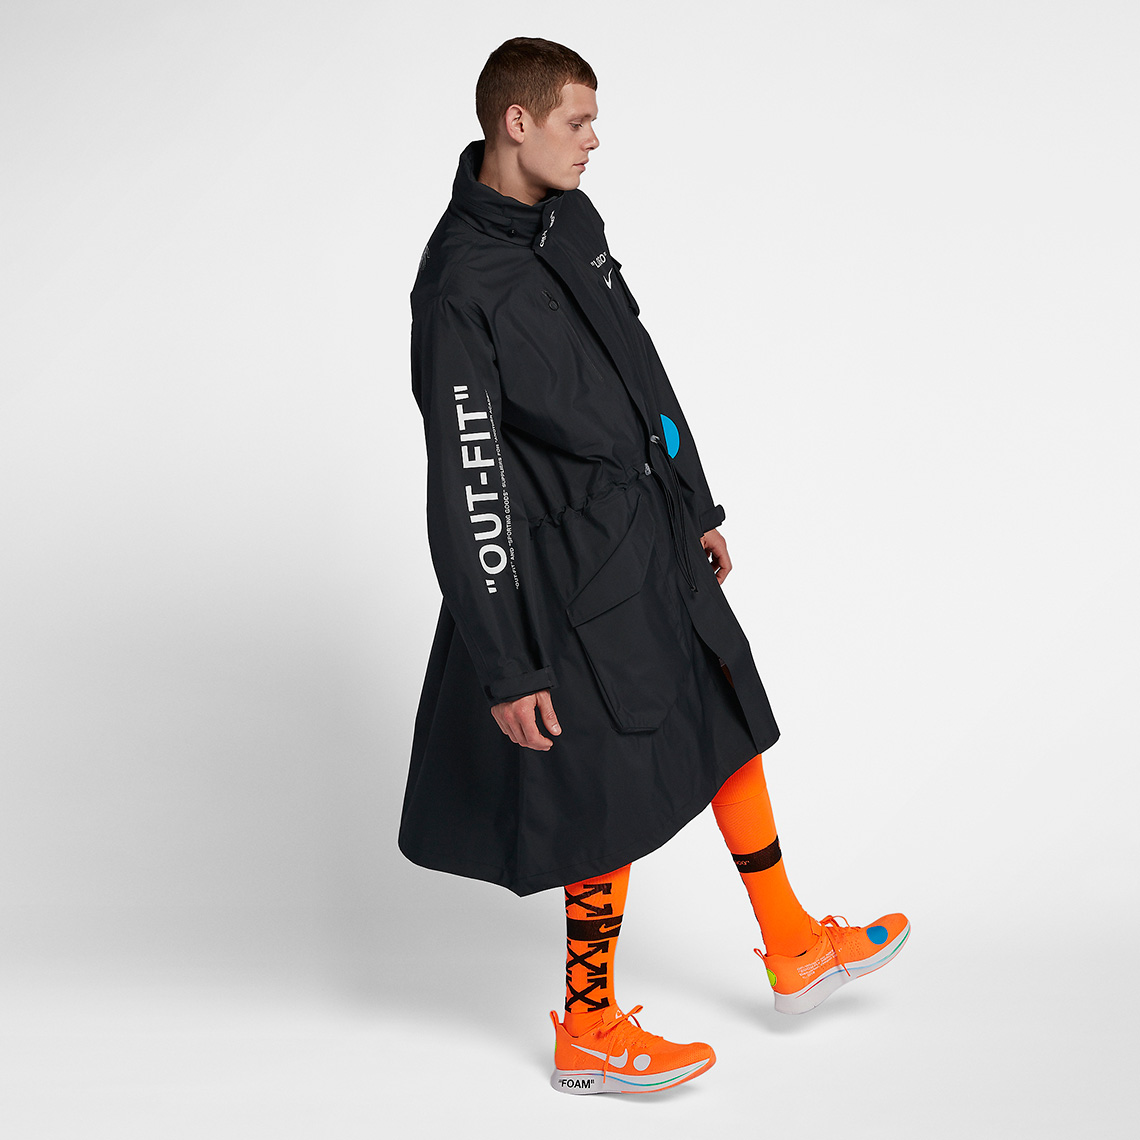 size 40 36f8d 30222 The OFF-WHITE™ x Nike